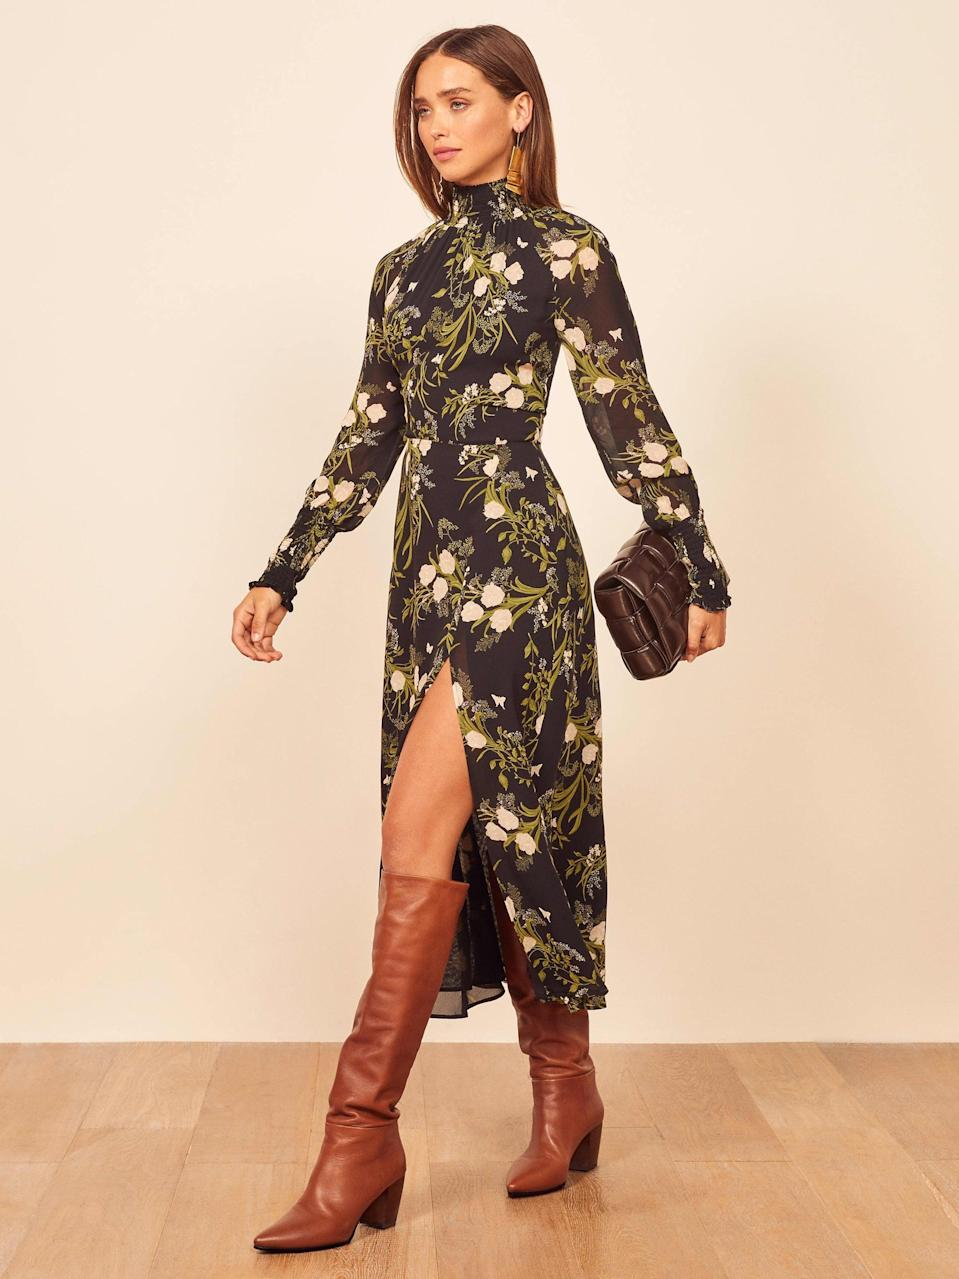 <p>I'm a total sucker for Reformation, but scoring its pieces on sale is a rare occurrence. The sustainable retailer will be hosting 30 percent off on Black Friday, and I'm hoping to get this <span>Reformation Valentin Dress</span> ($248) so I can wear it through the holidays and on New Year's Eve.</p>